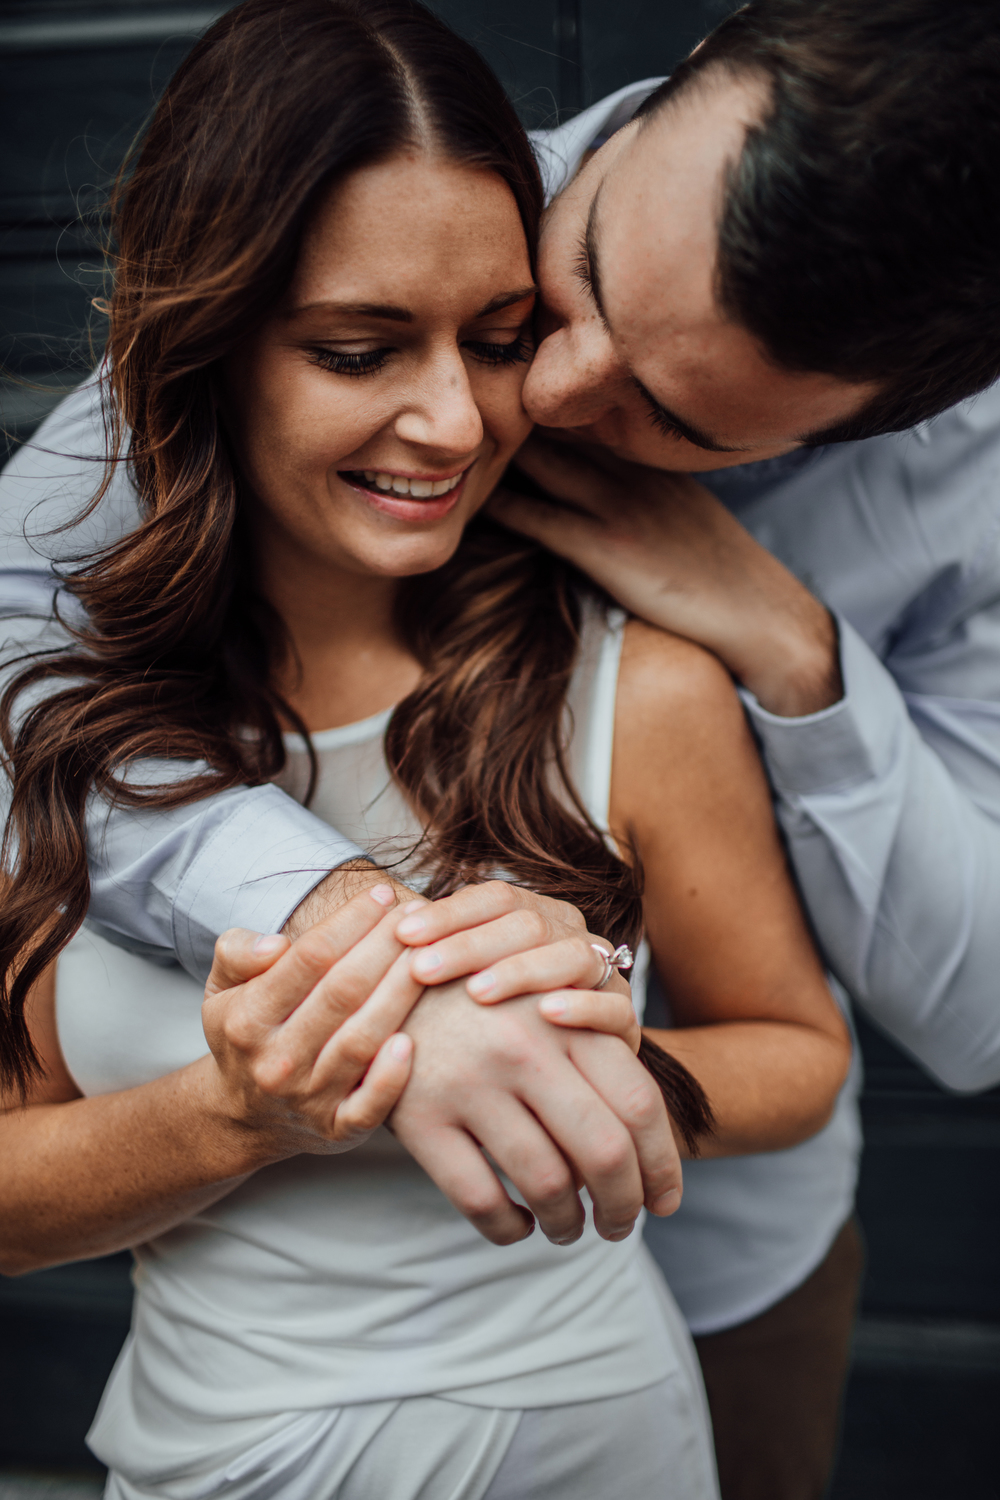 BRITTANYandKEVIN-Engagement2015 (49 of 115).jpg